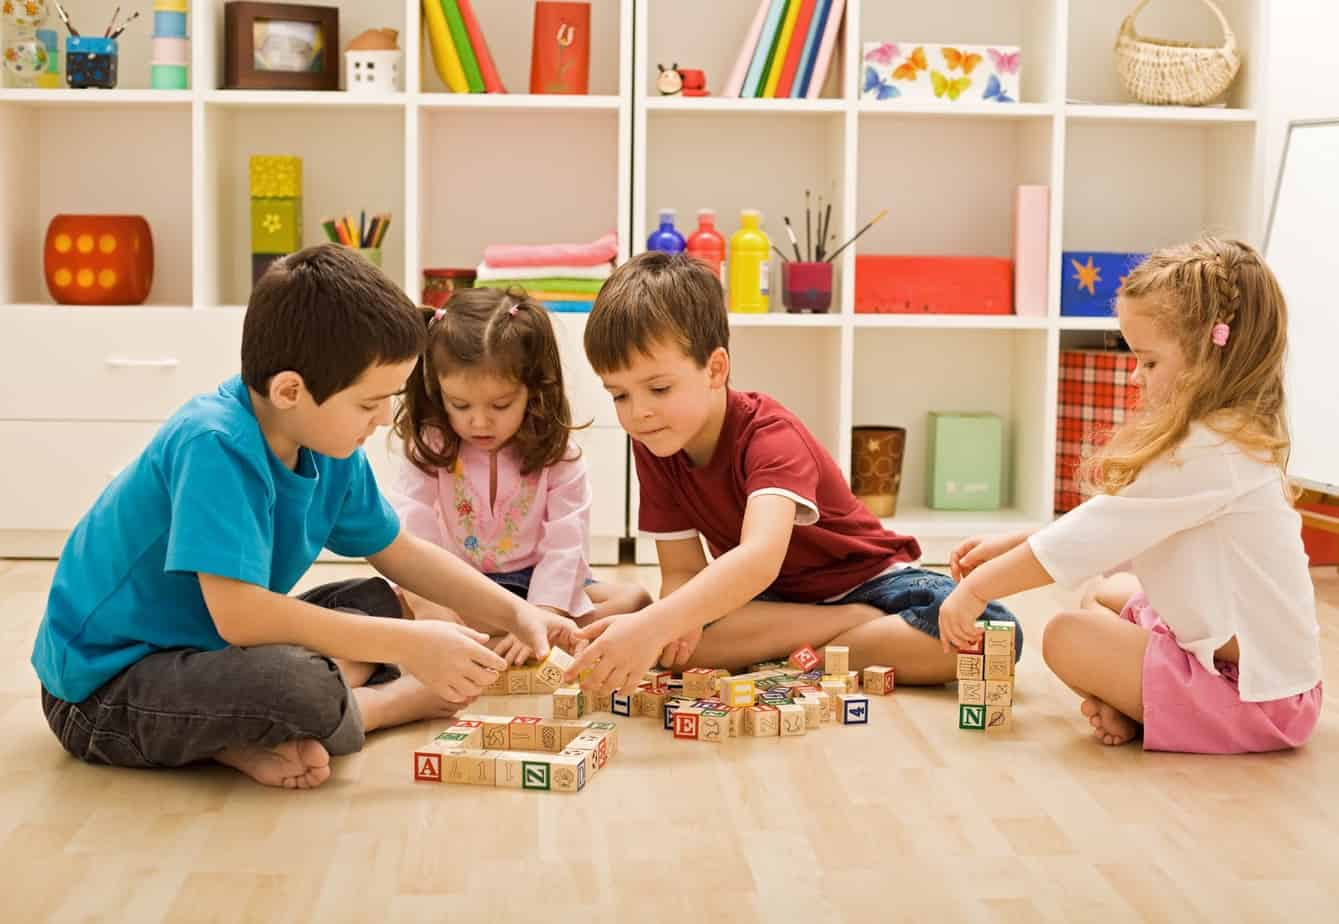 Purposeful Parenting - Children Playing Blocks Together - Cause and Effect